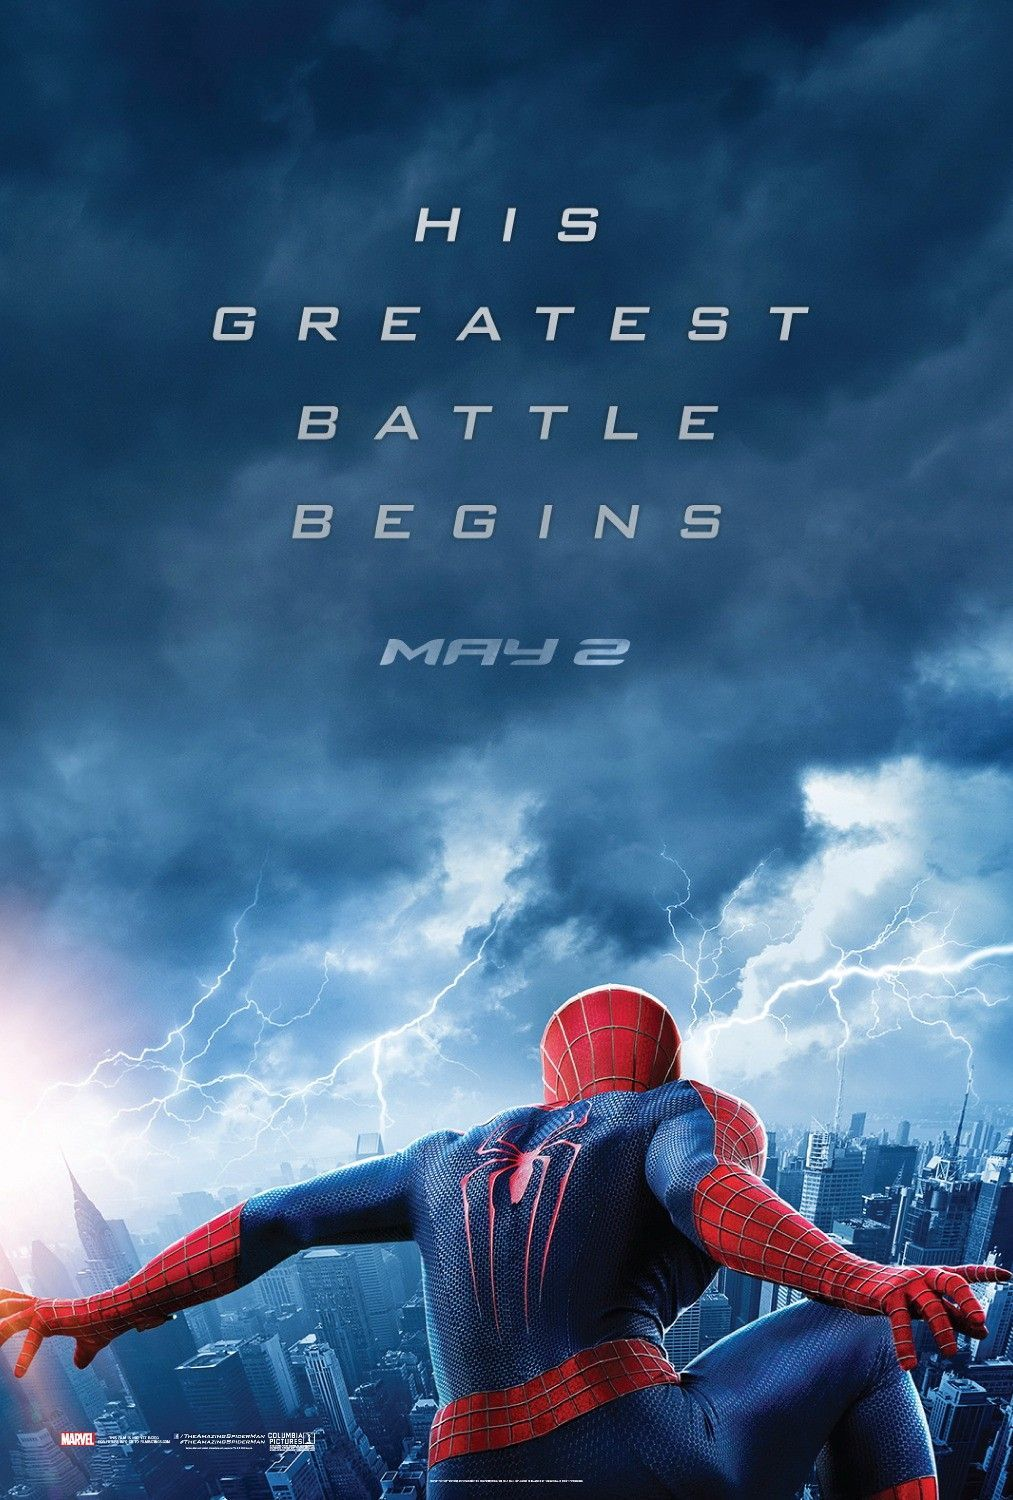 New Amazing Spider Man 2 Poster Released Amazing Spiderman Spider Man 2 The Amazing Spiderman 2